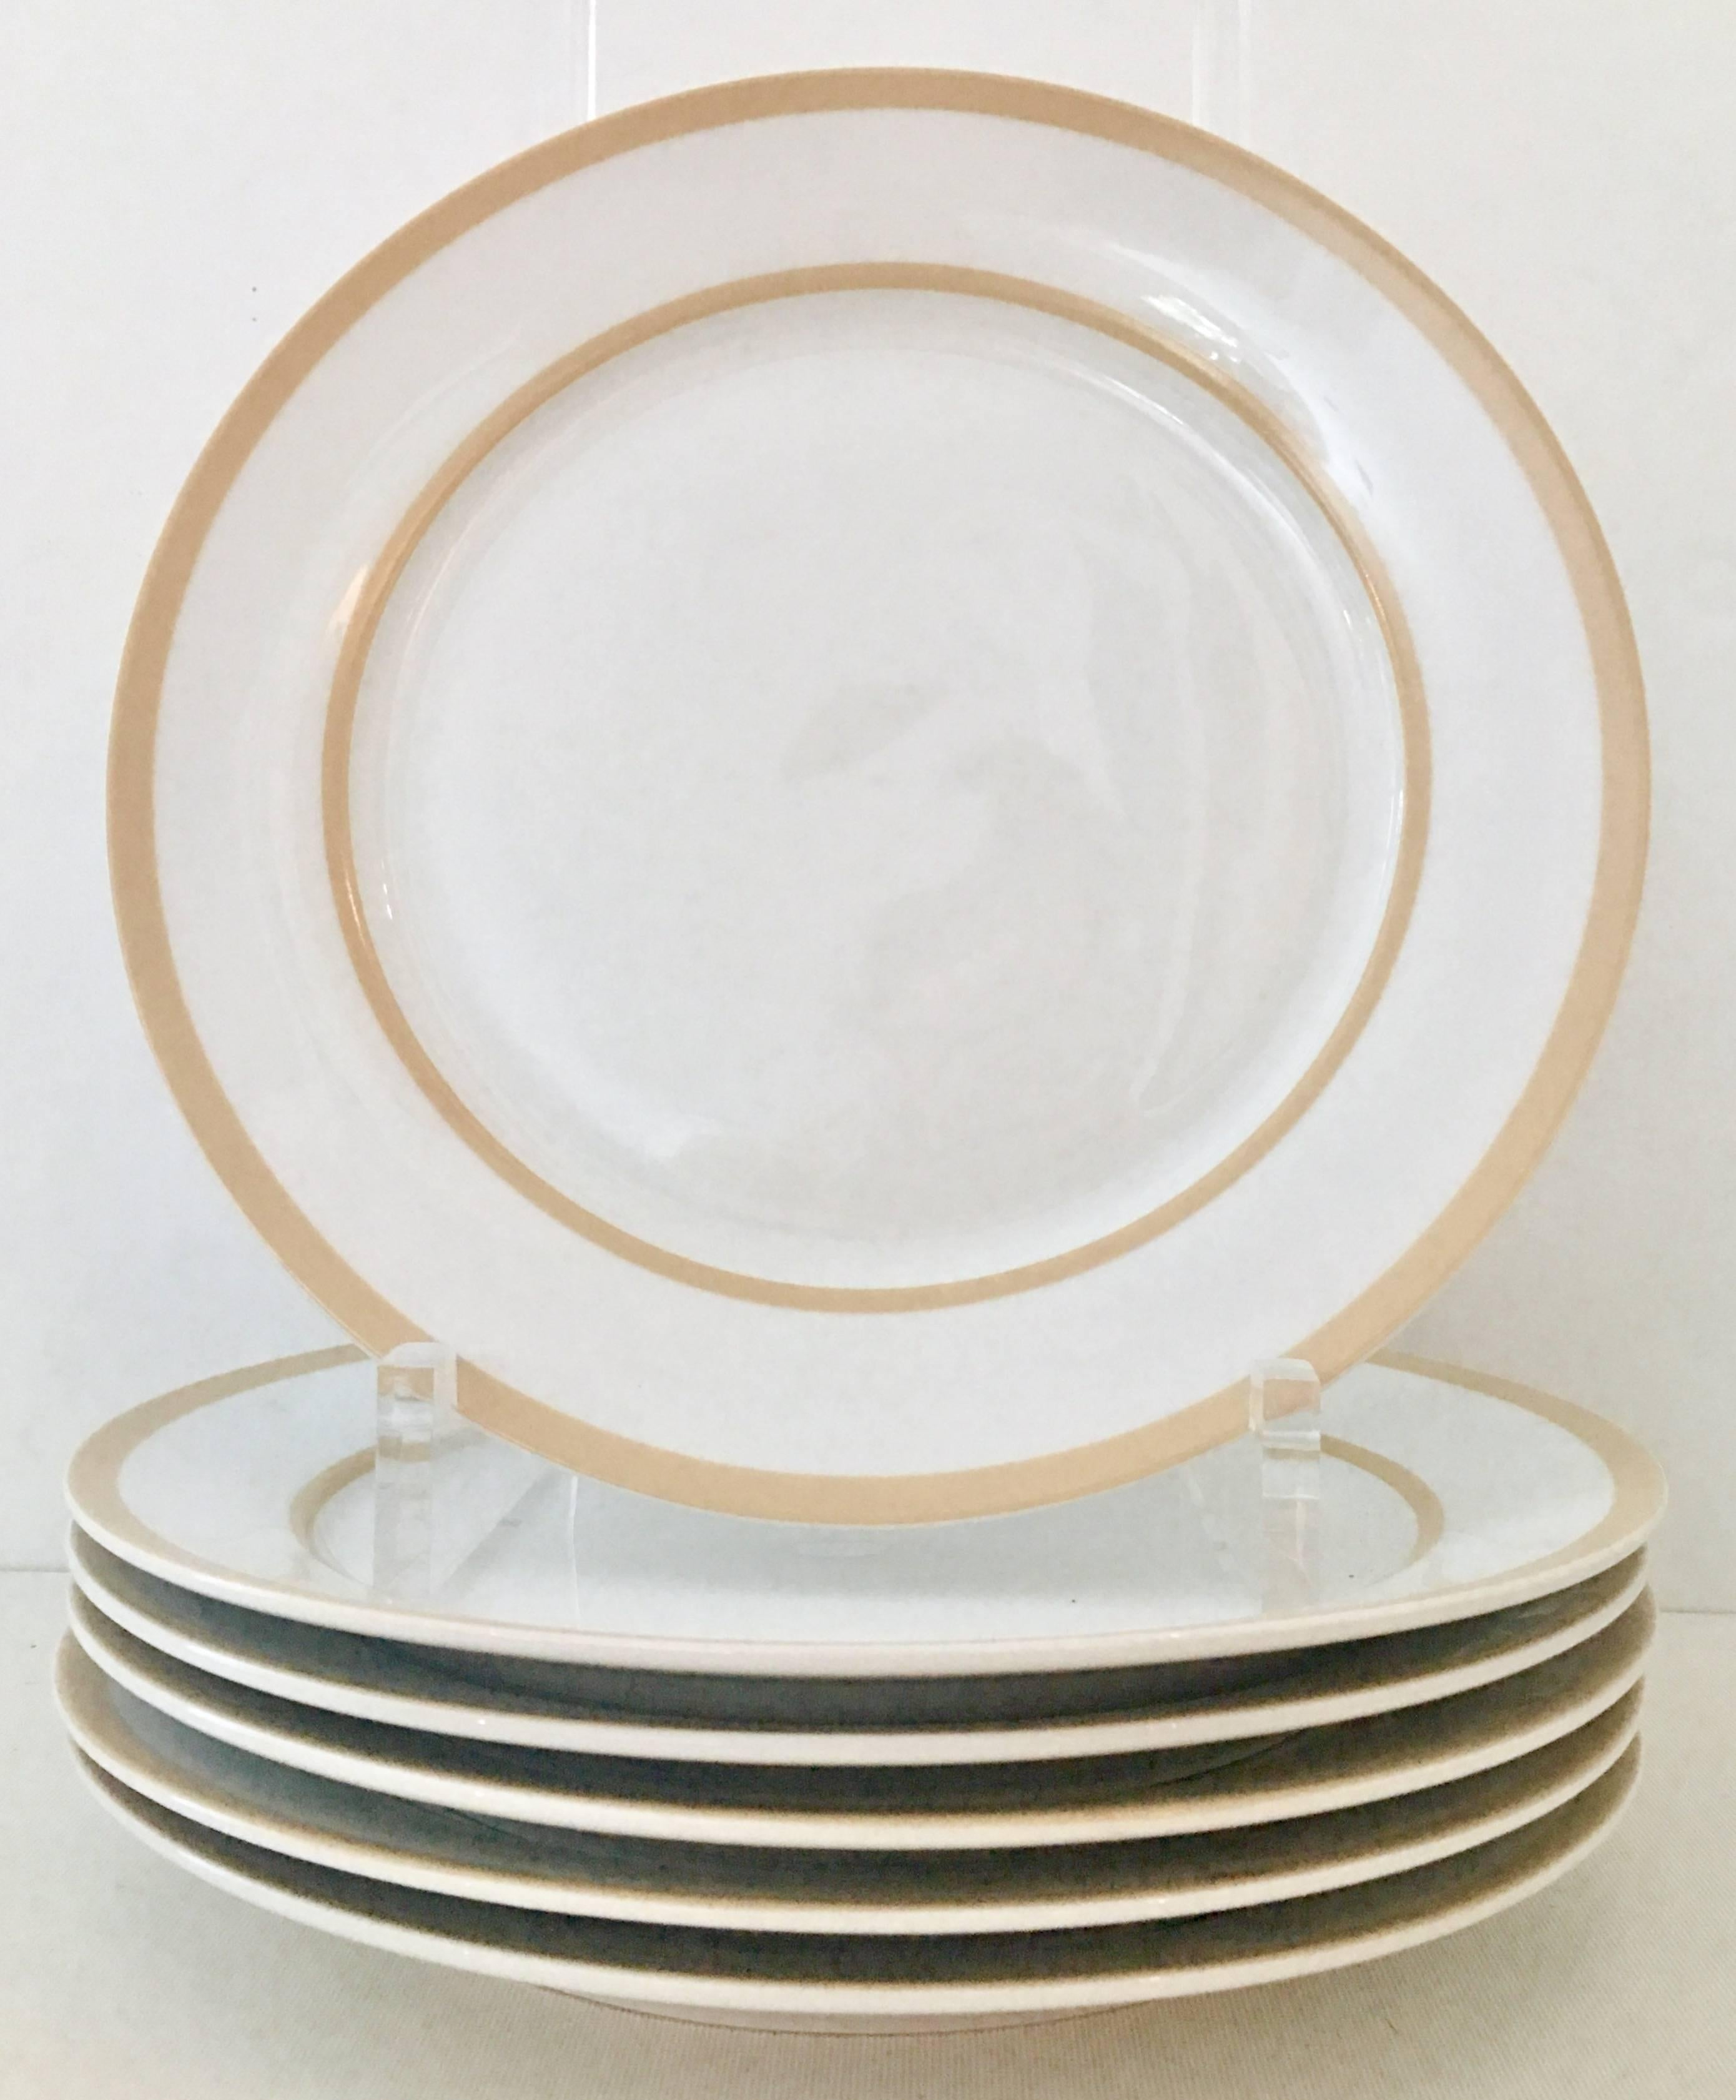 Contemporary Ceramic Modern Geometric Dinnerware By Colin Cowie S/20 For Sale at 1stdibs & Contemporary Ceramic Modern Geometric Dinnerware By Colin Cowie S ...